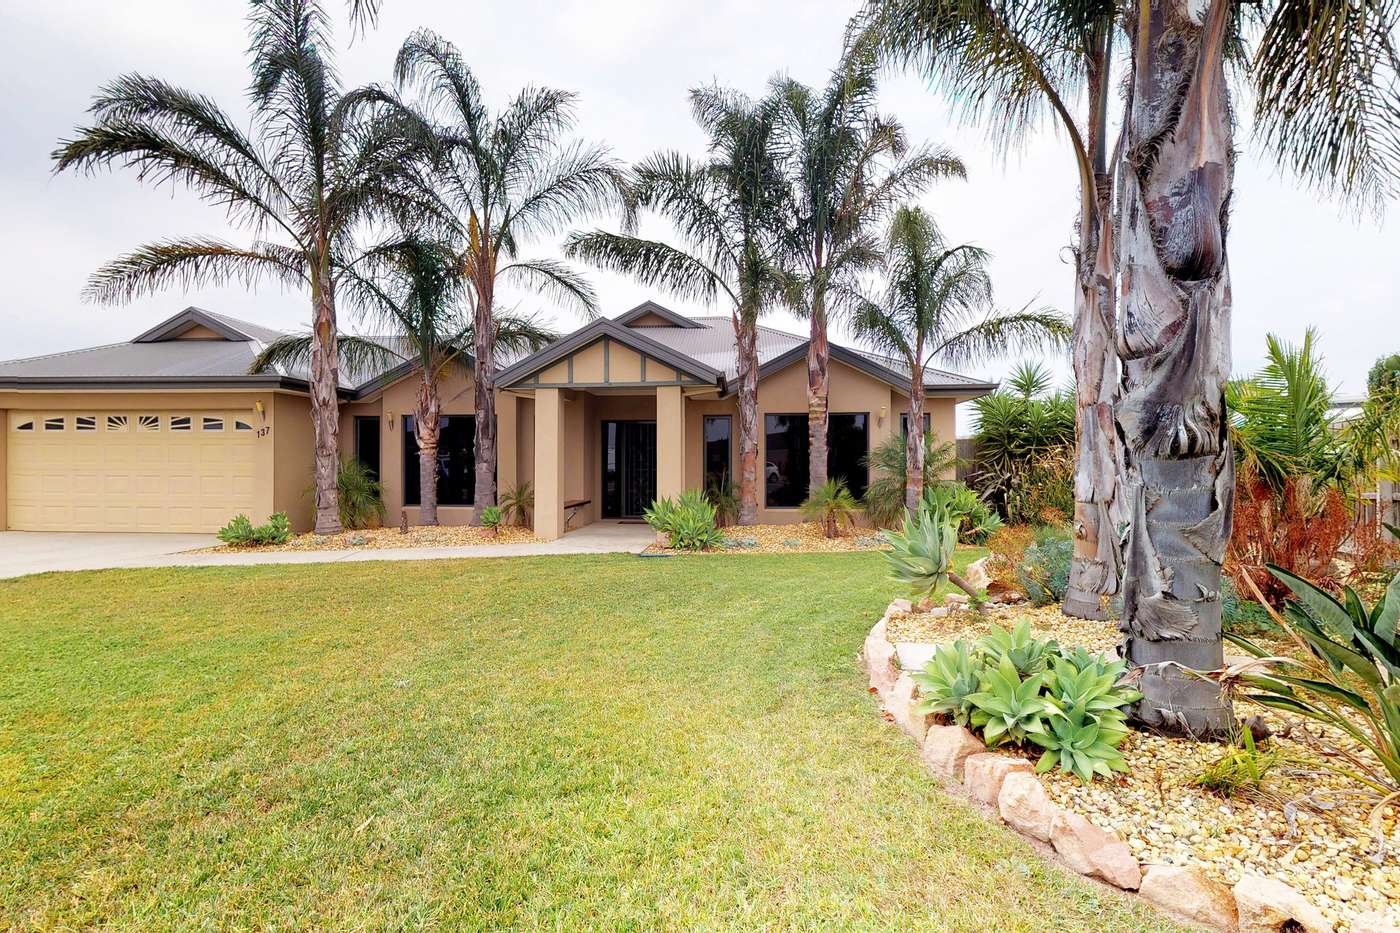 Main view of Homely house listing, 137 Riverslea Boulevard, Traralgon, VIC 3844